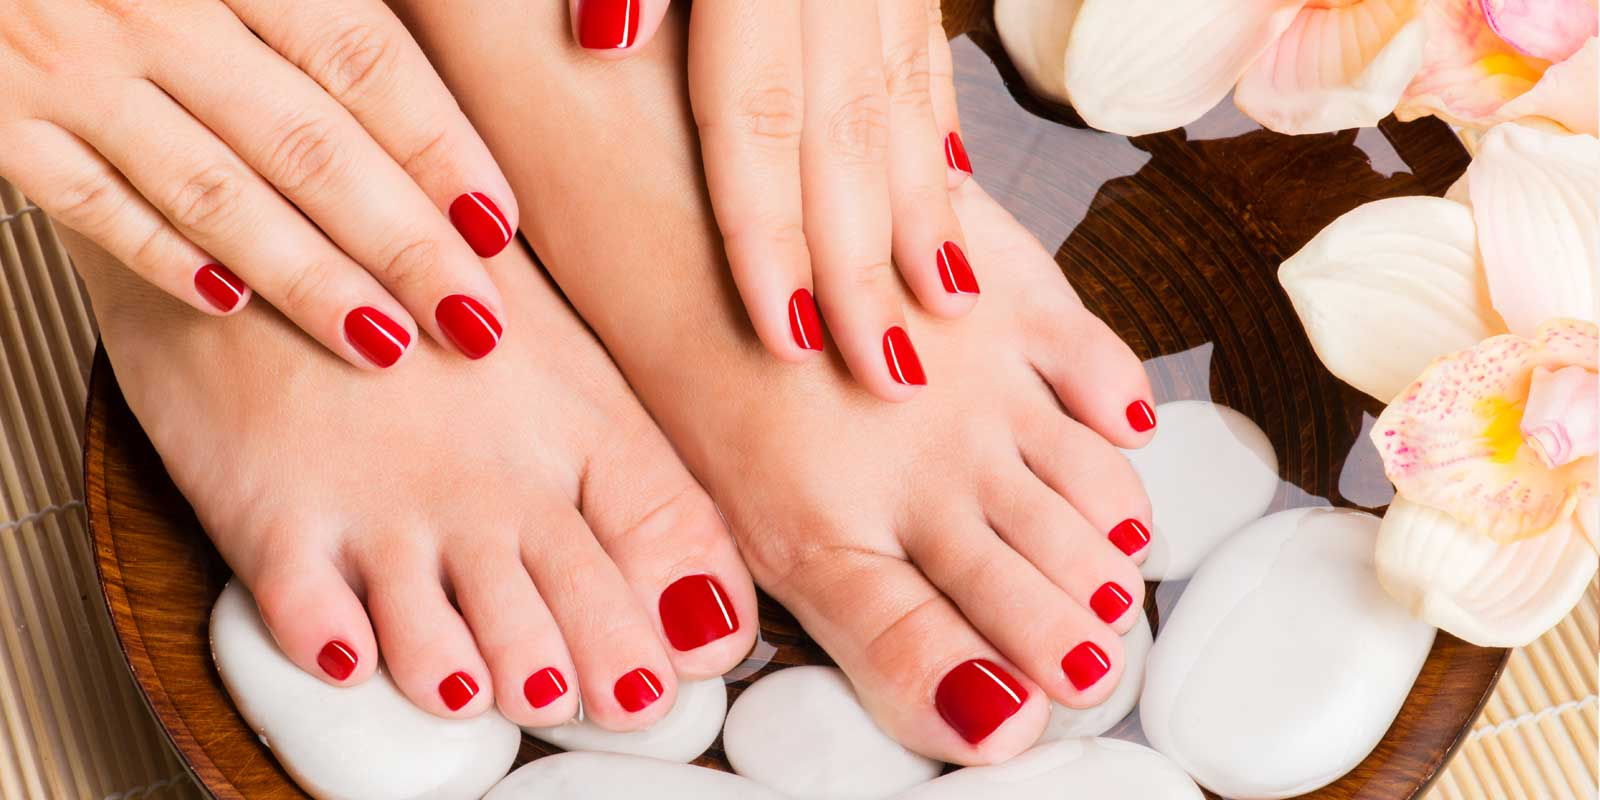 Biltmore Spa and pedicure offers